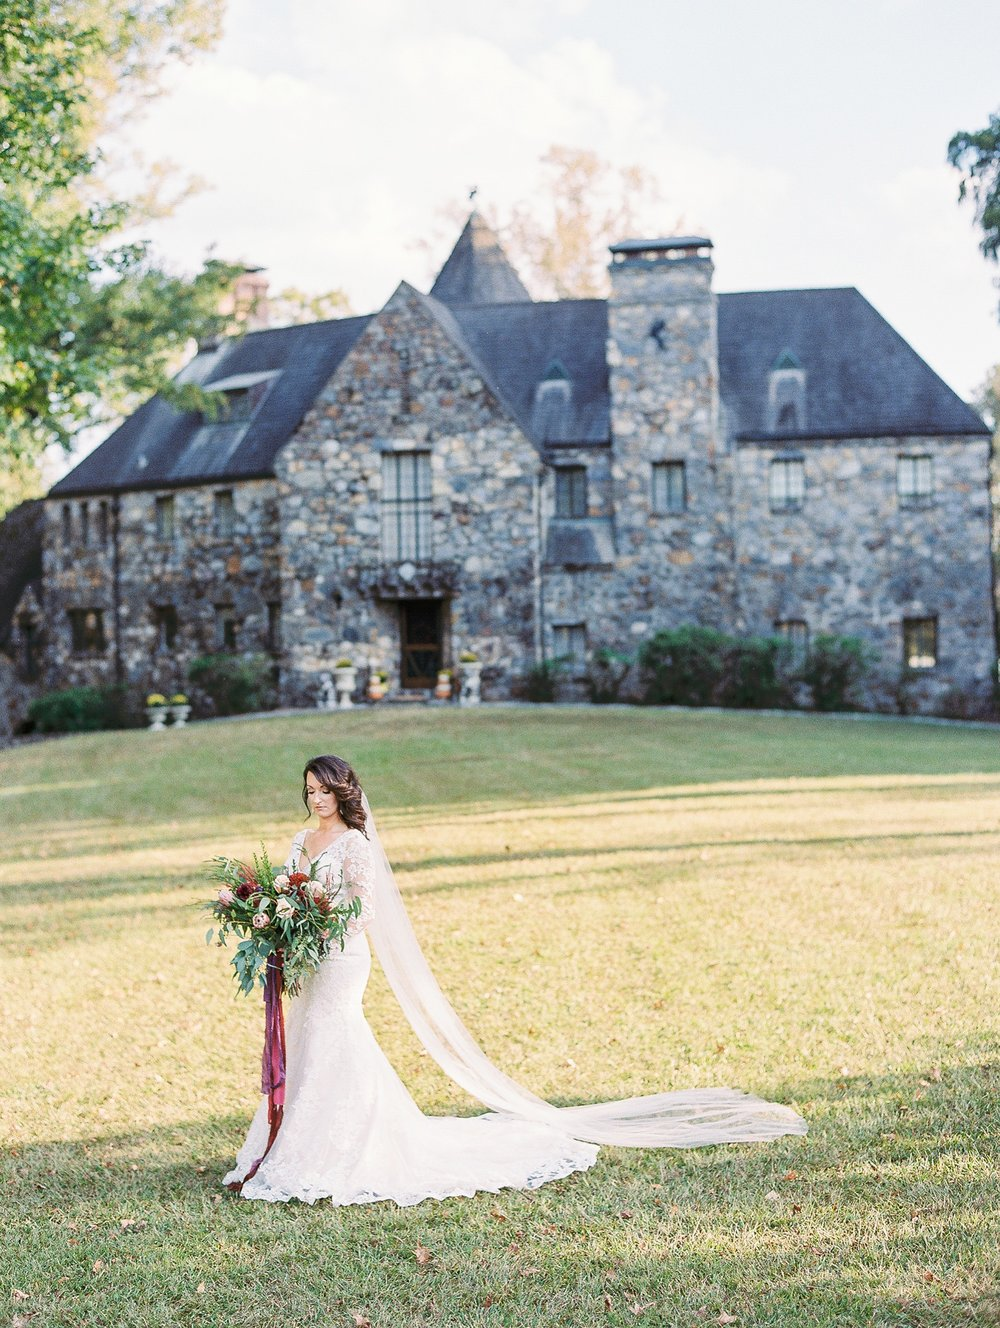 Castle on Stagecoach Wedding Arkansas Photographer_0543.jpg